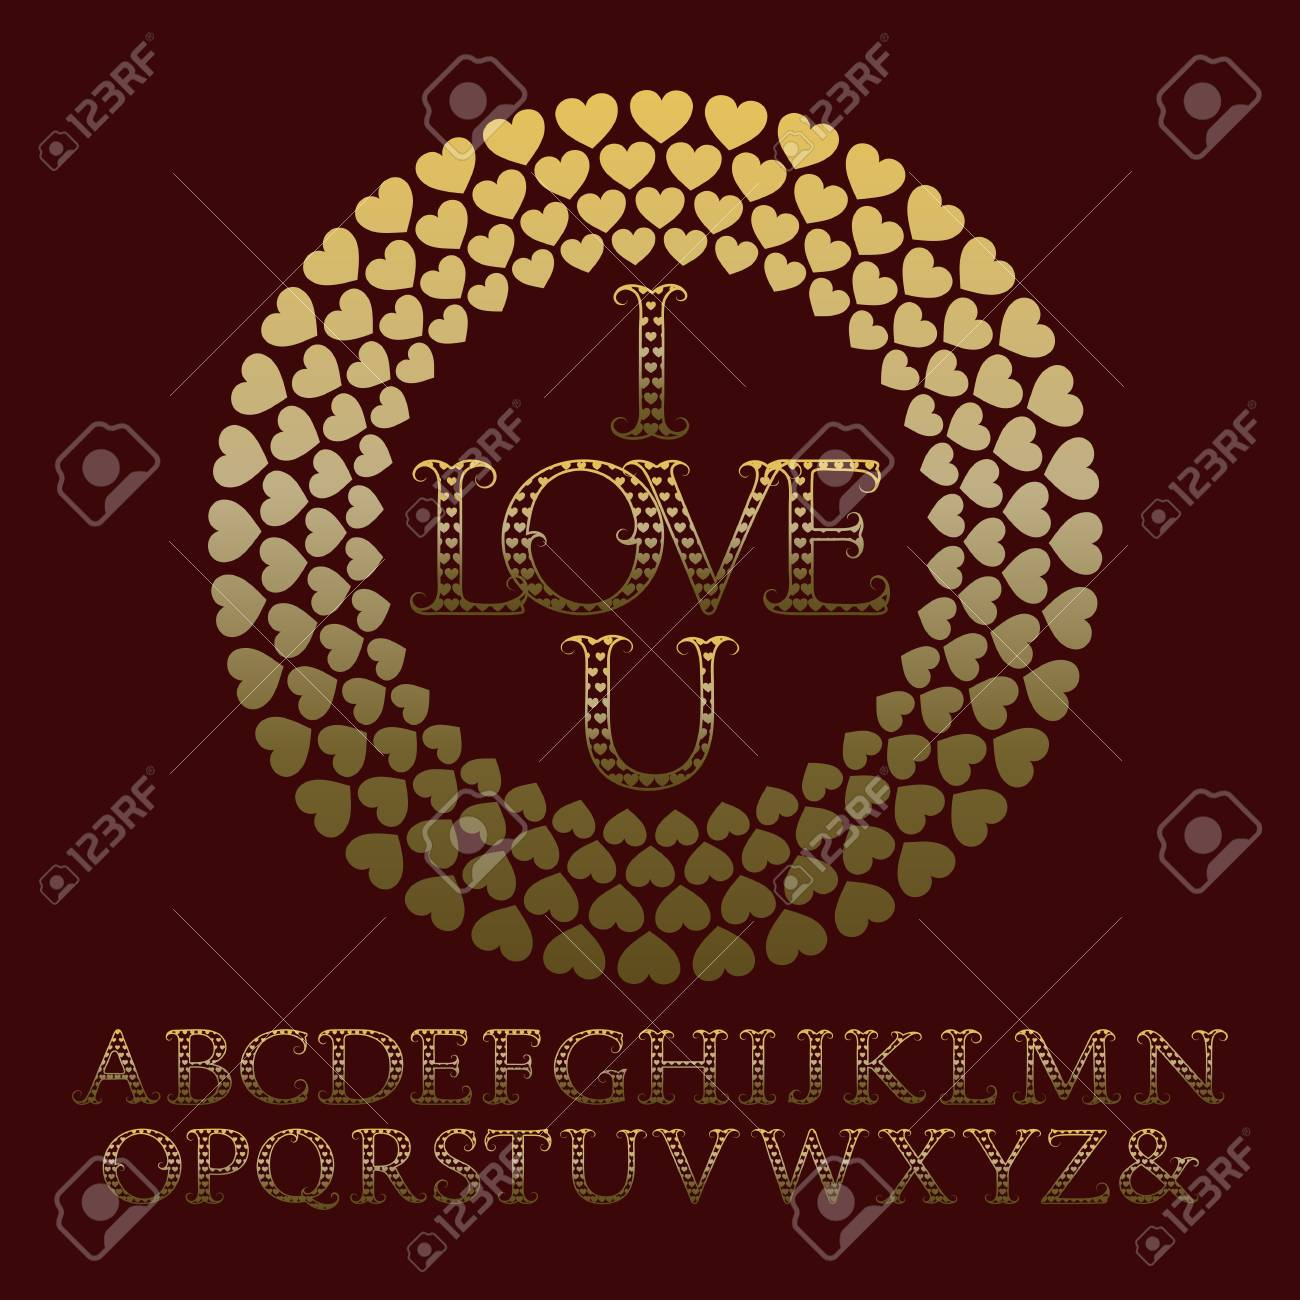 Gold Patterned Letters With Tendrils Vintage Font In Romantic